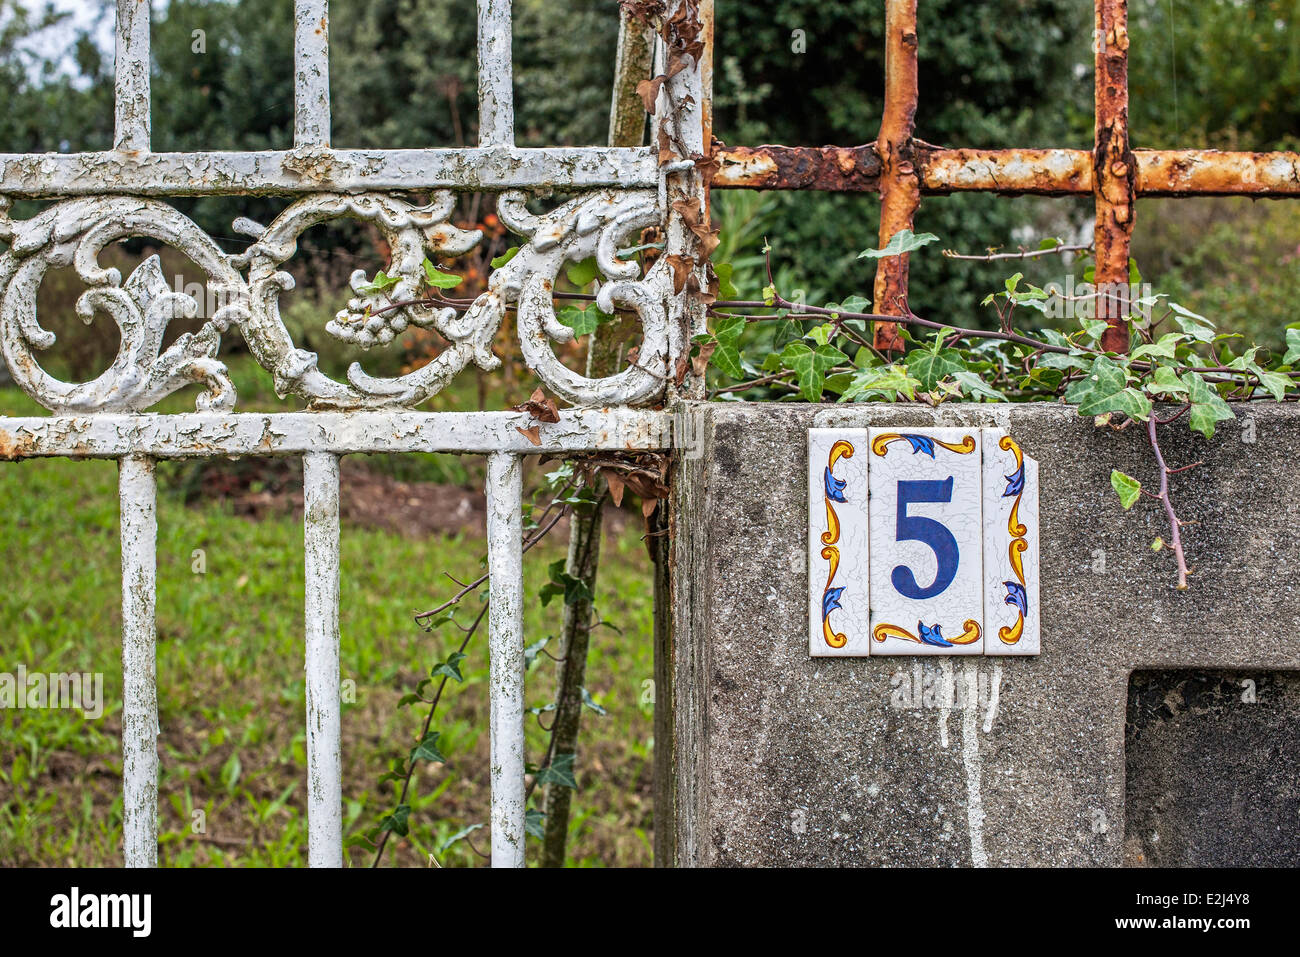 Number sign on rusty gate - Stock Image